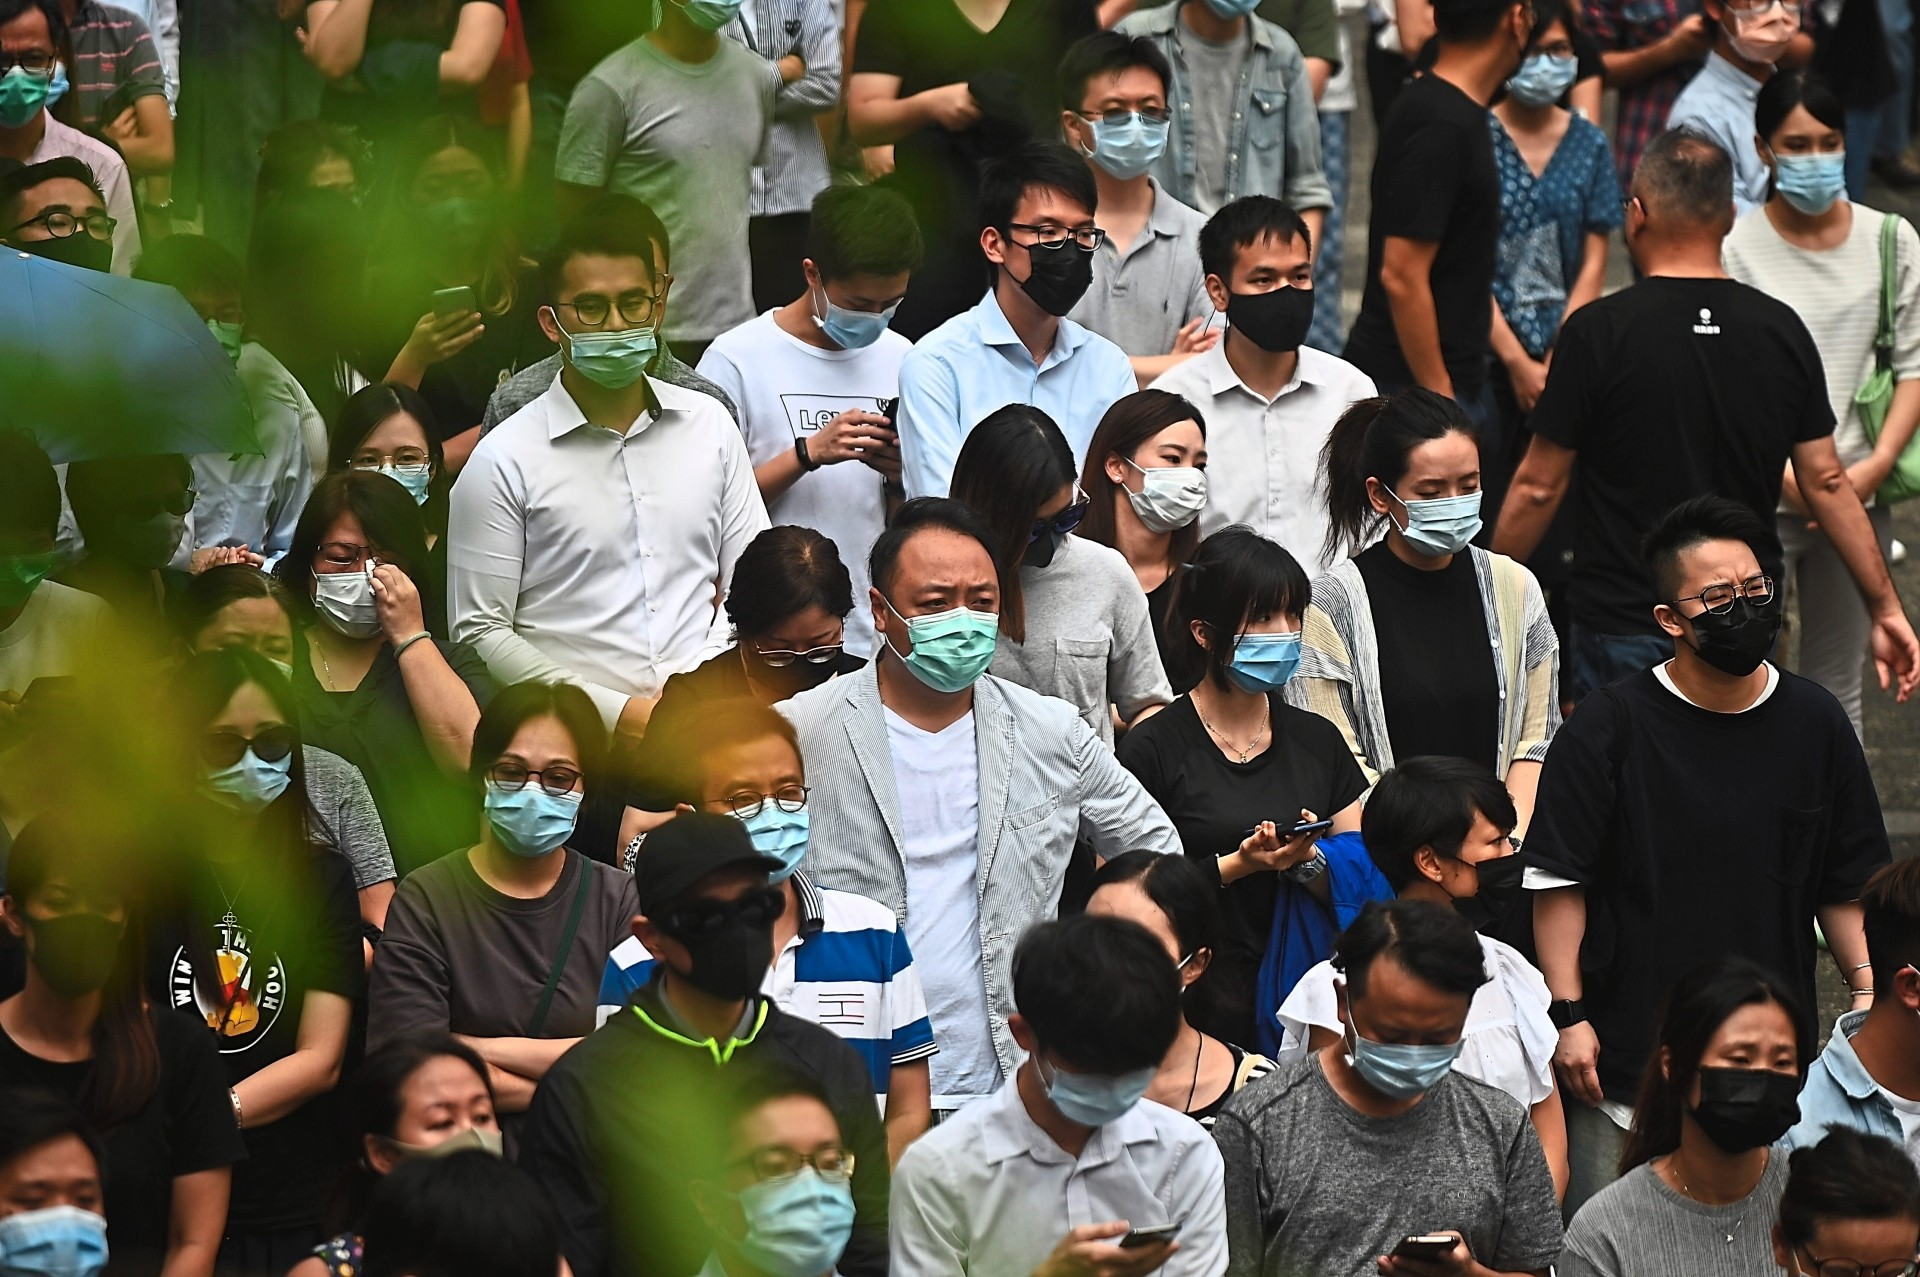 Protest supporters: People attending a flash mob rally to show support for pro-democracy protesters in Hong Kong. Some Hong Kong youths have come out violently for the cause of democracy and freedom. — AFP